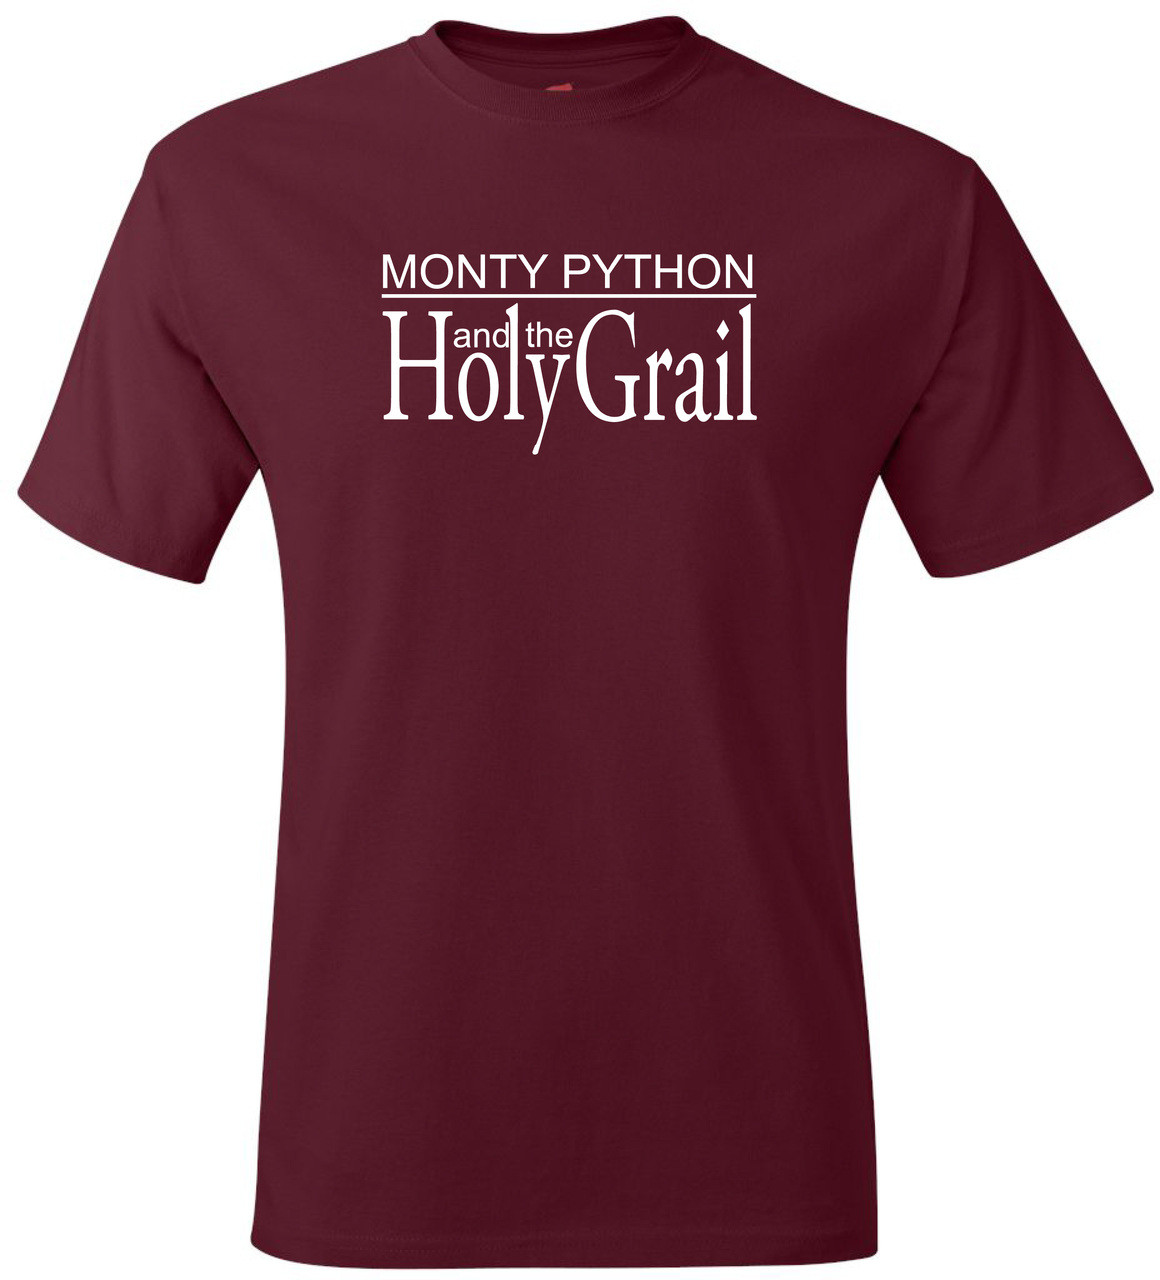 0eea507d8 Monty Python Holy Grail Logo Funny T-Shirt. $25.99 $13.99. (You save  $12.00). Cardinal Red